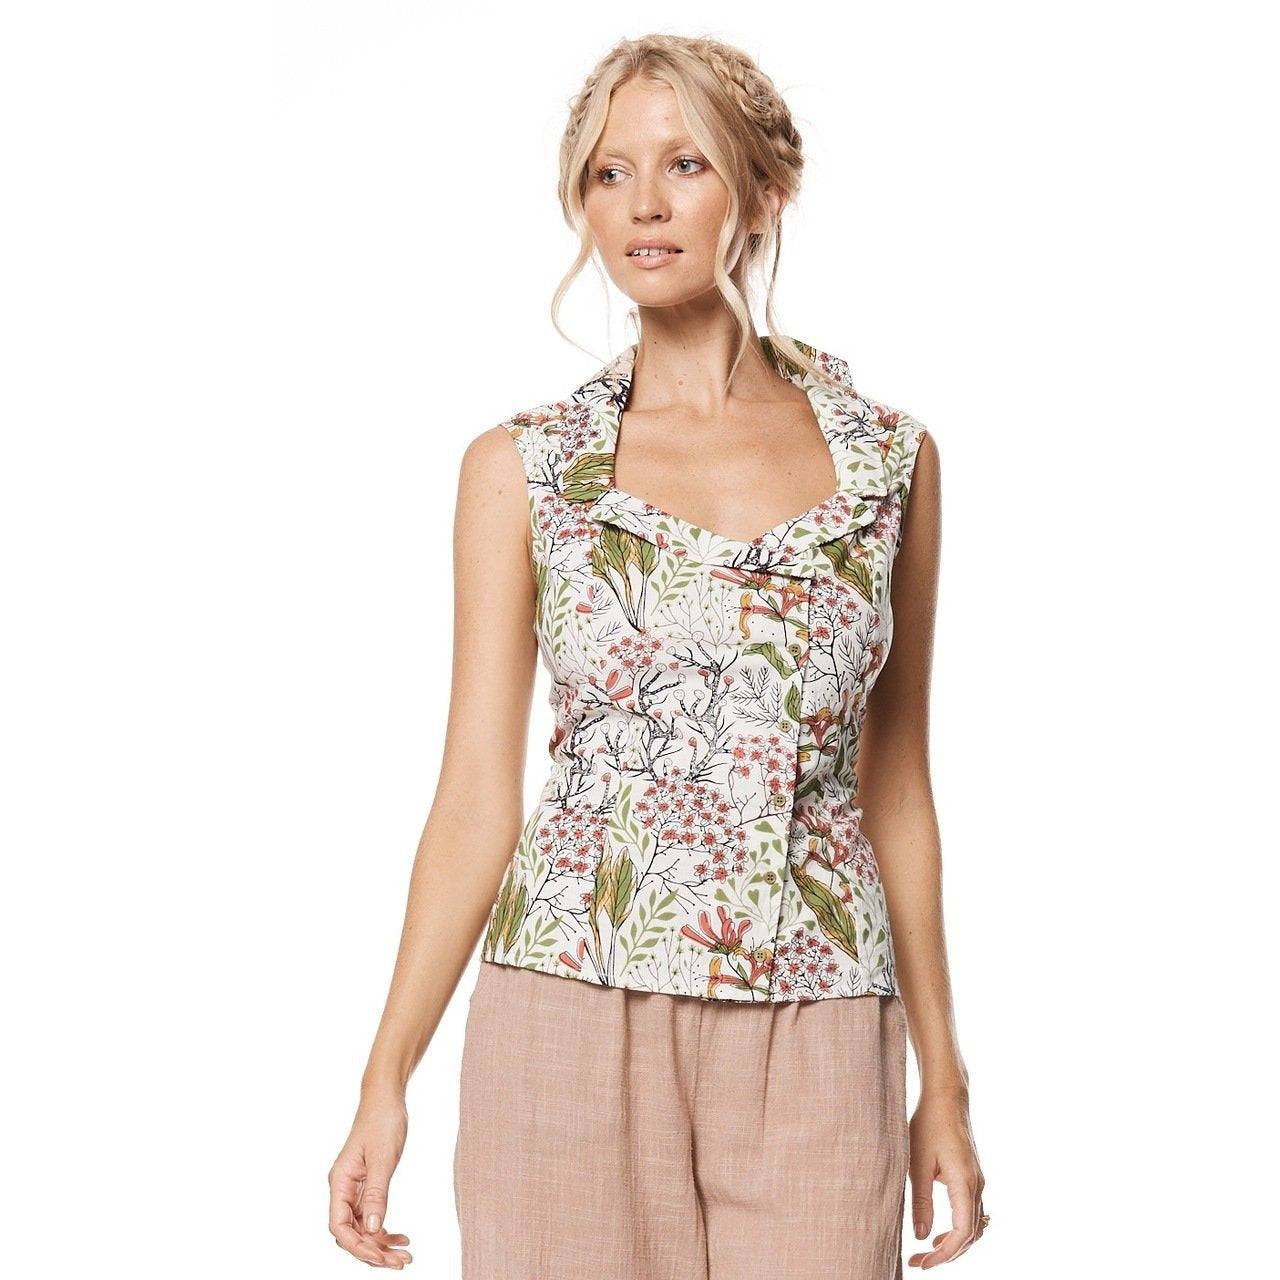 MahaShe Kasha Top in Freesia Print